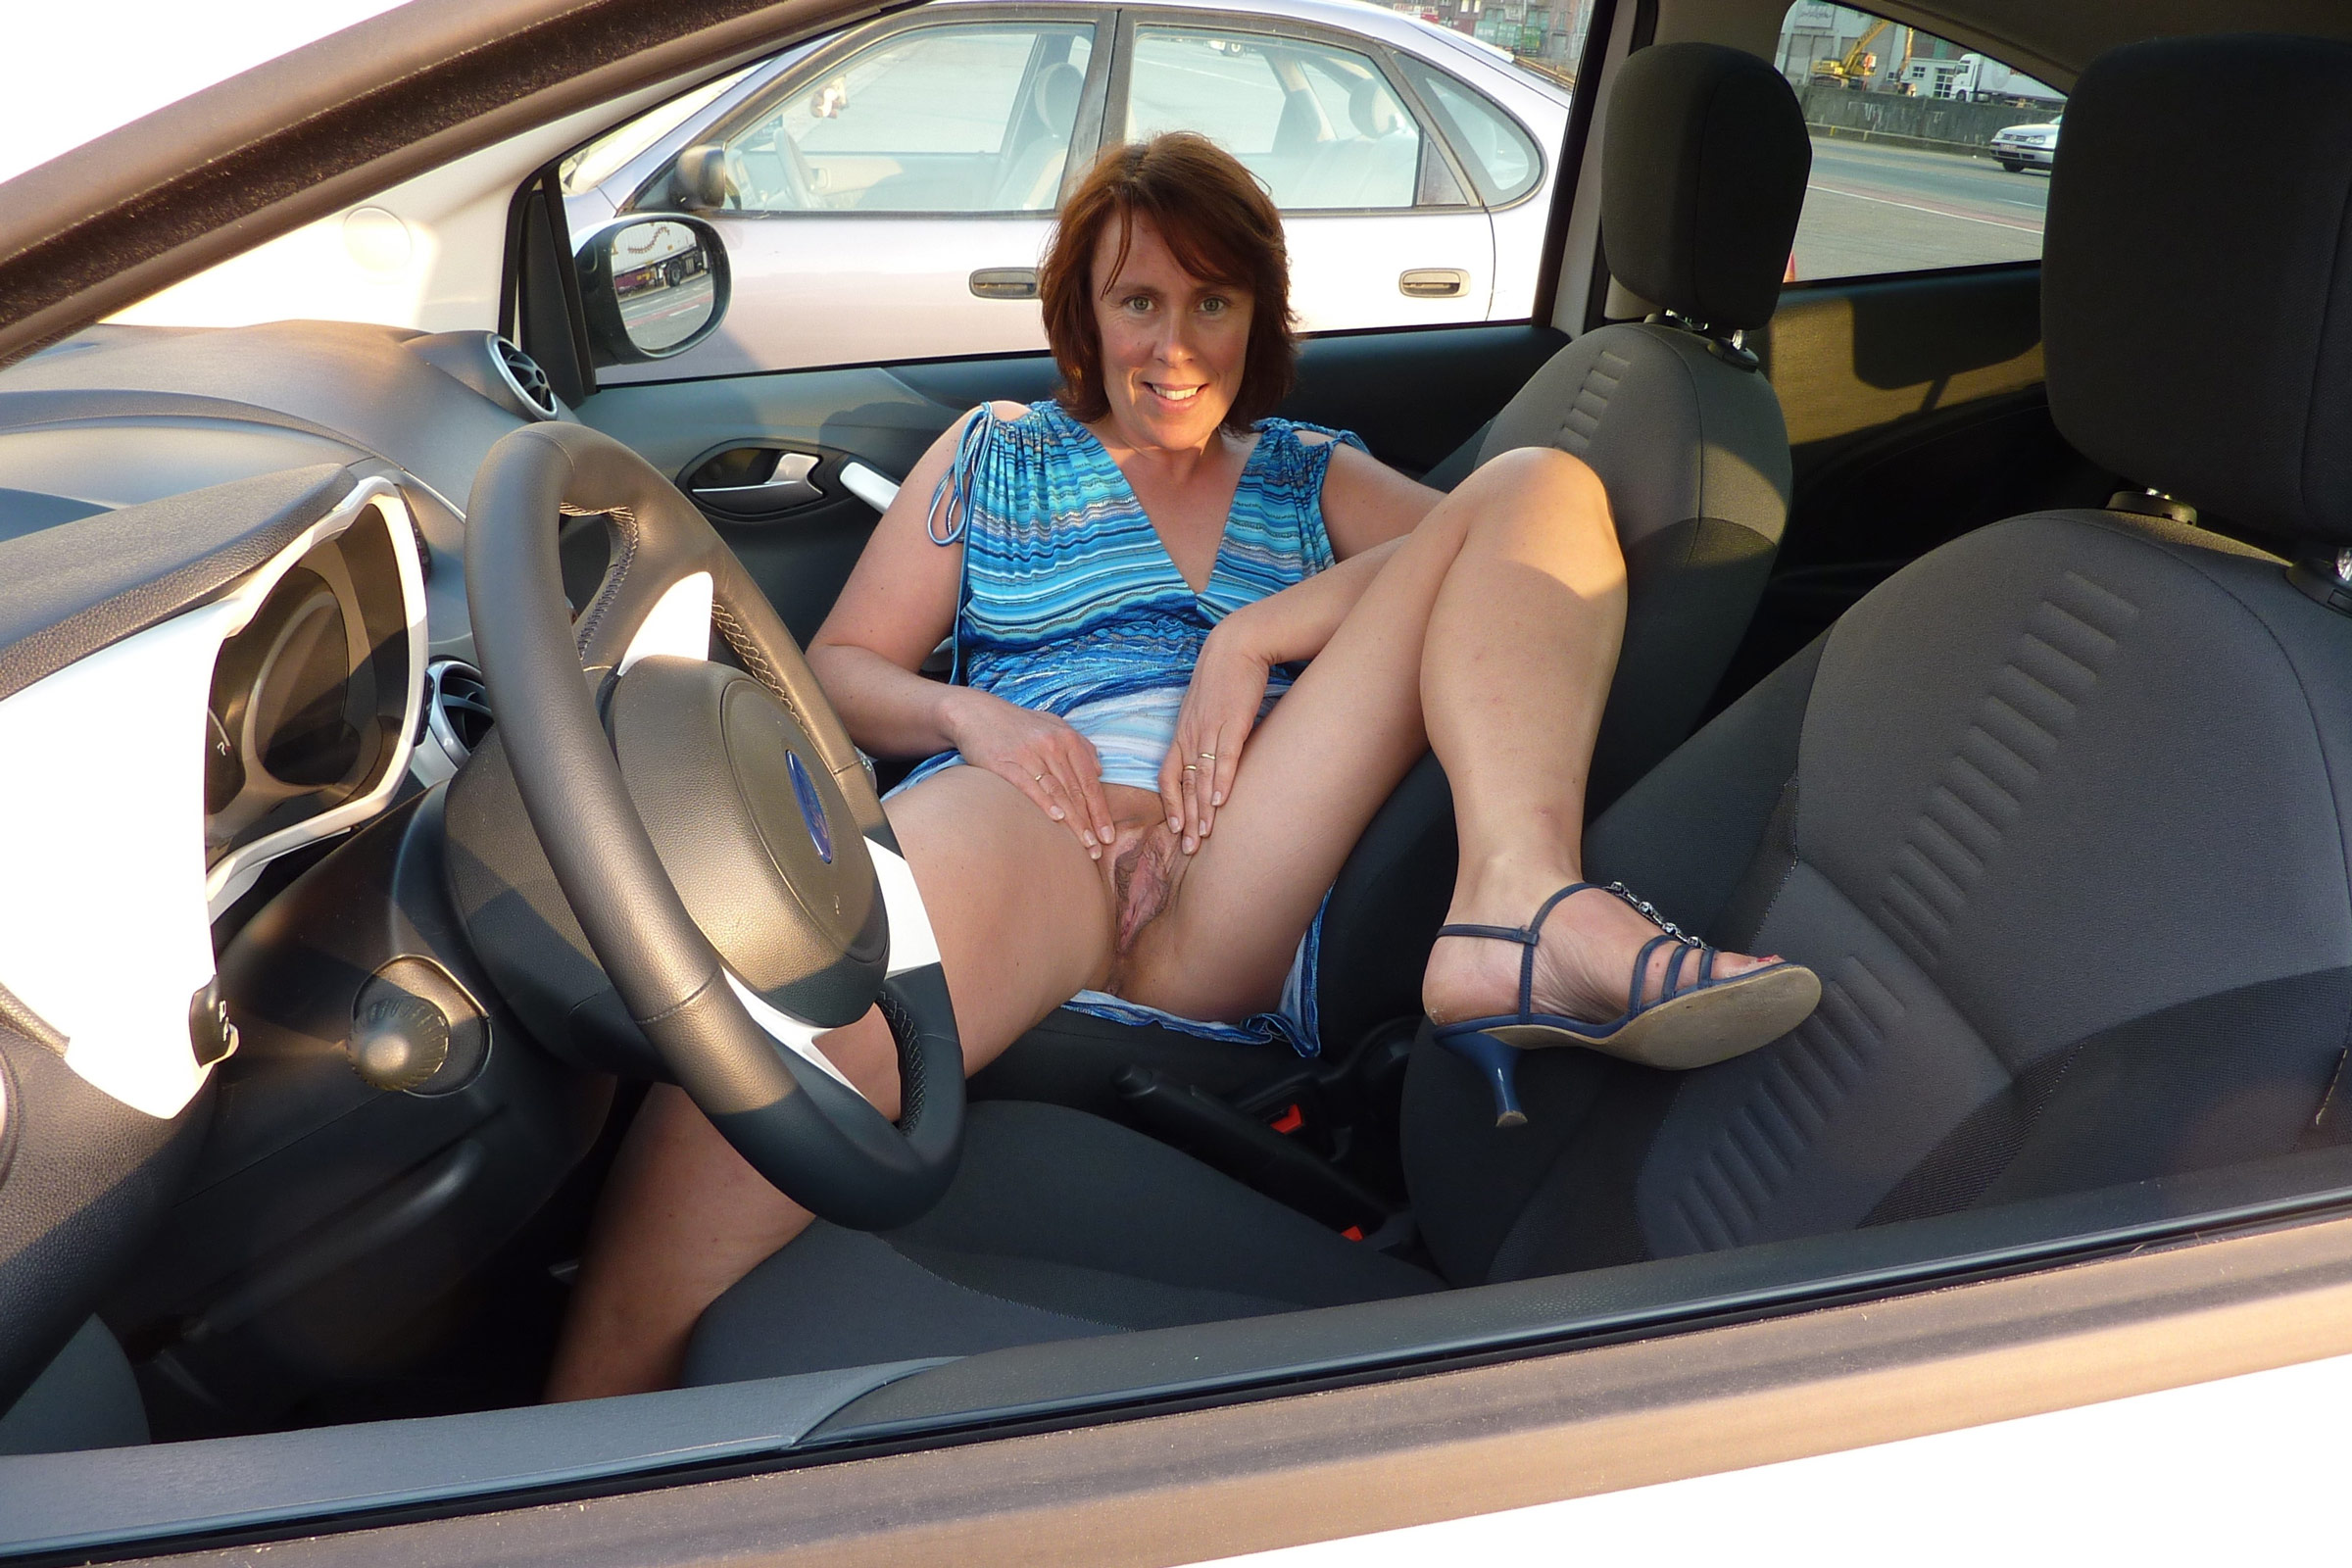 Remarkable, porn naked in the car